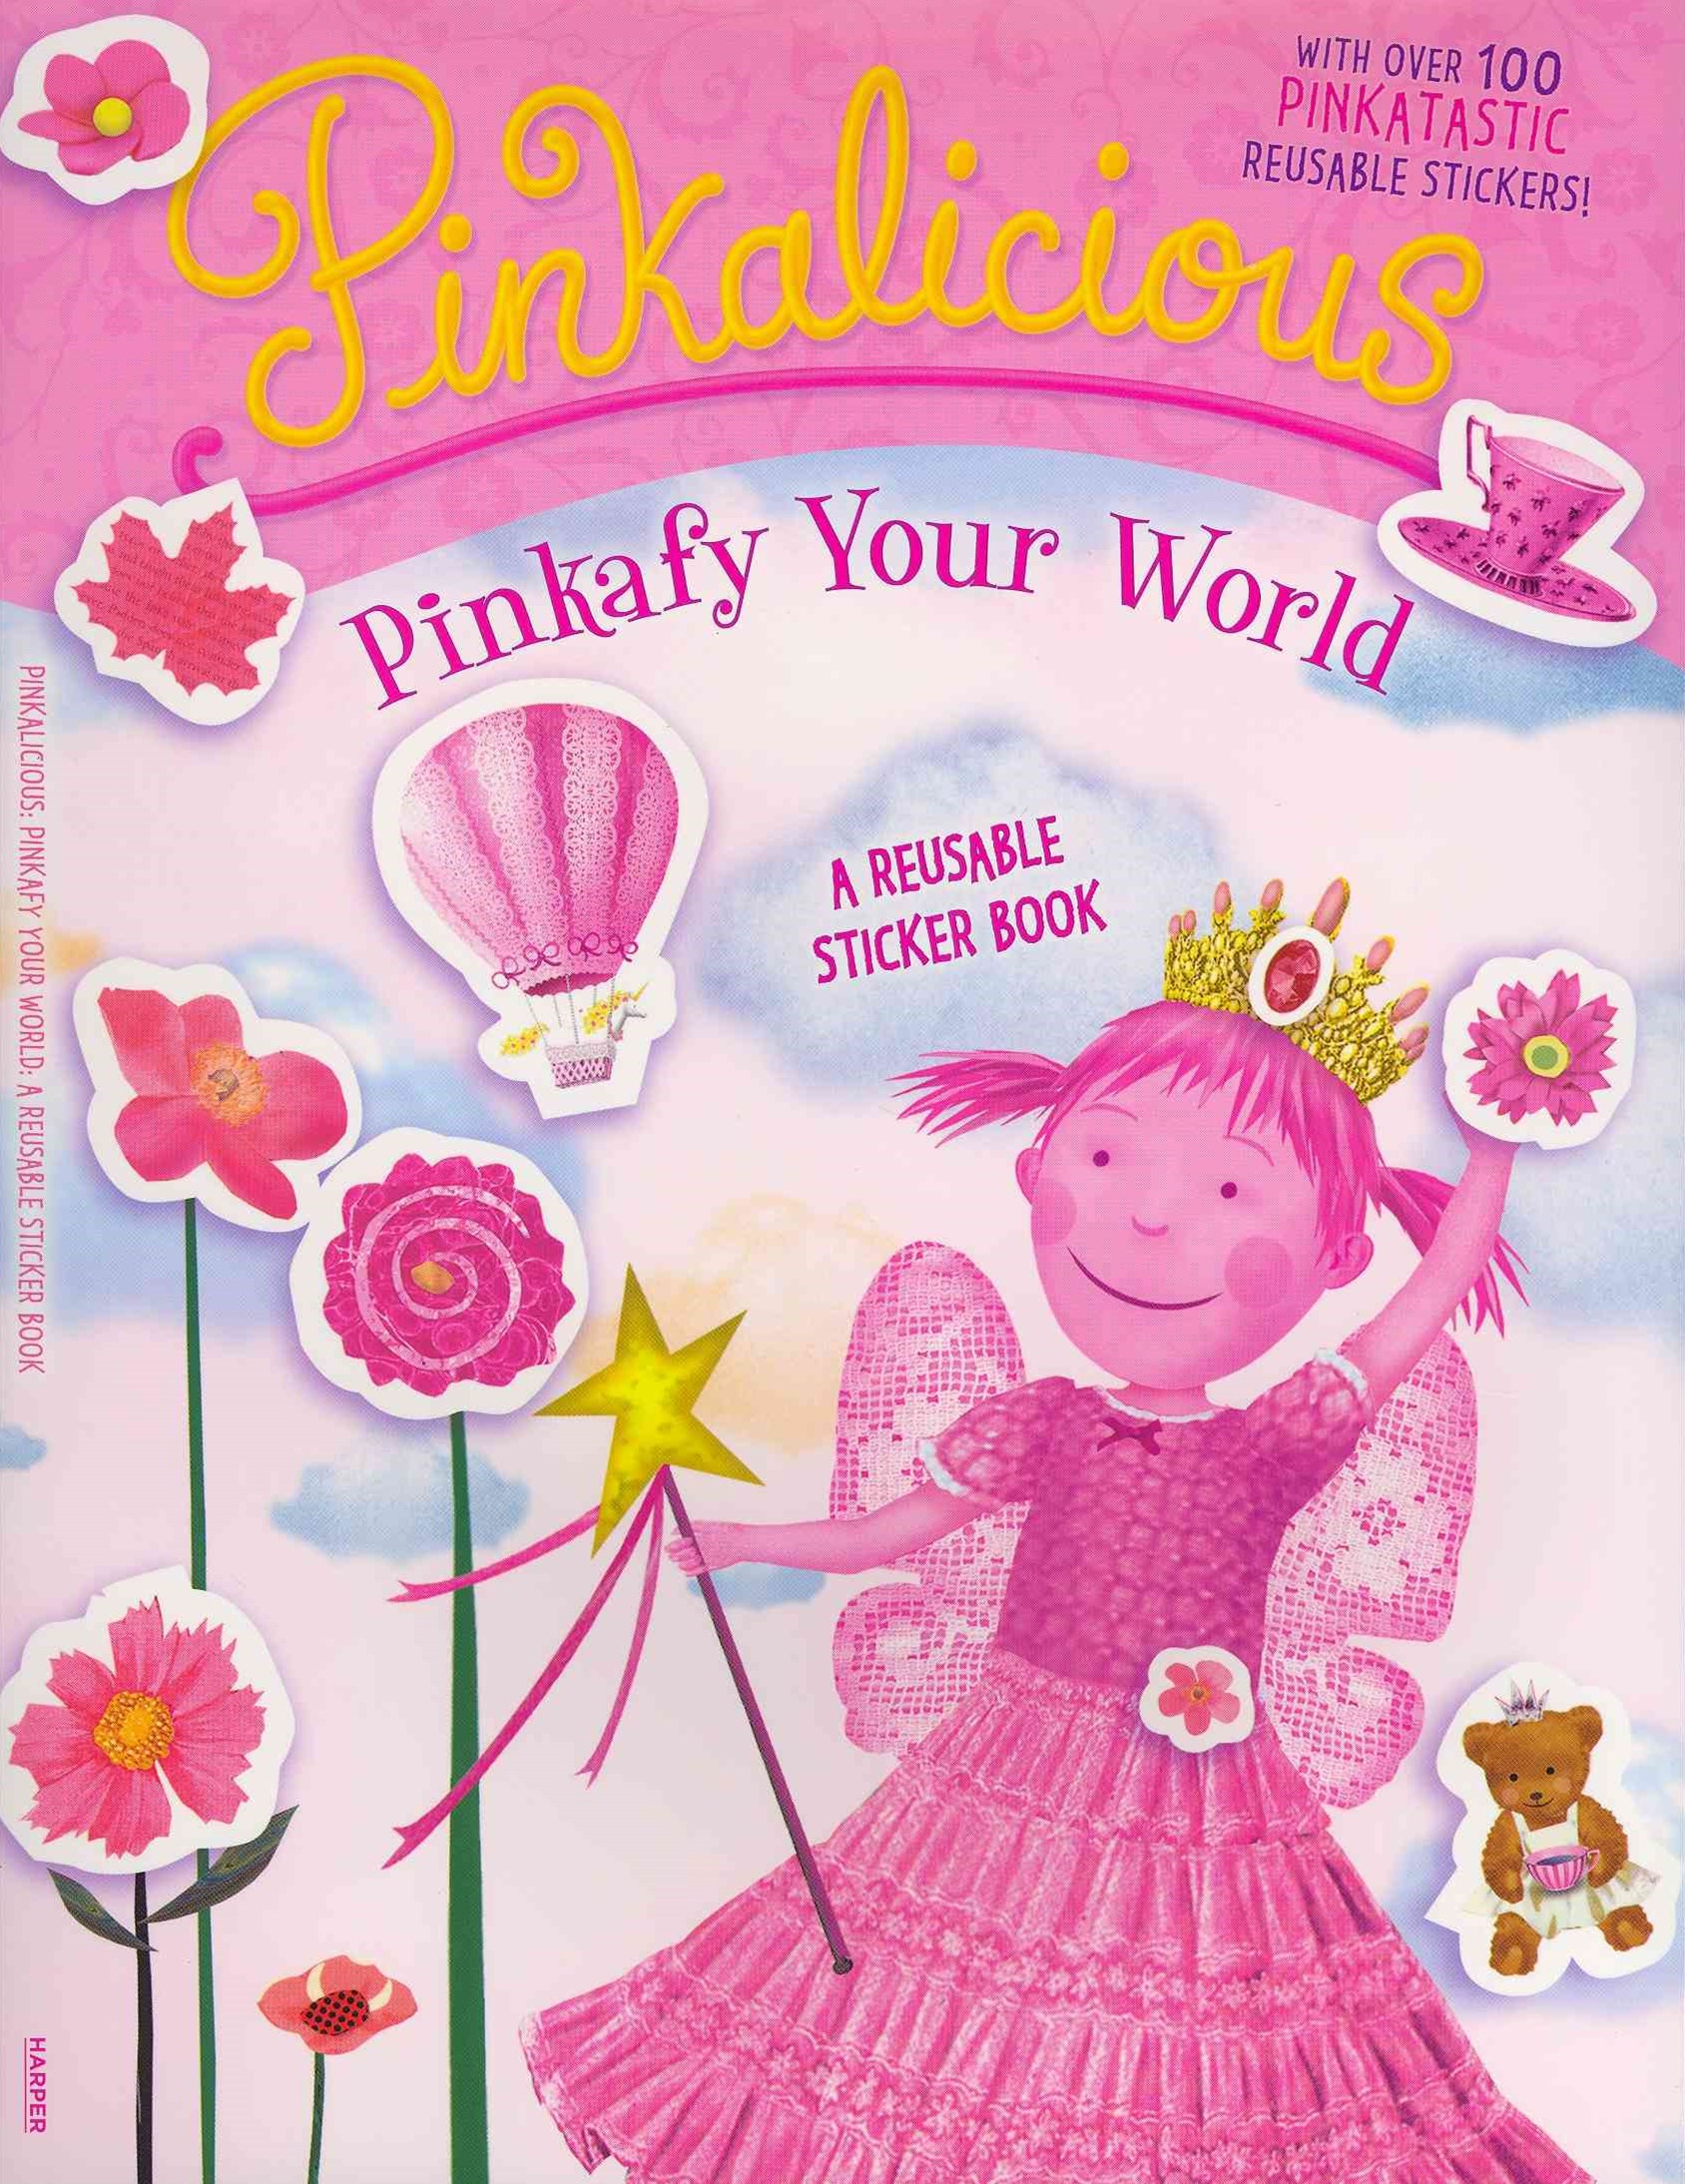 Pinkafy Your World